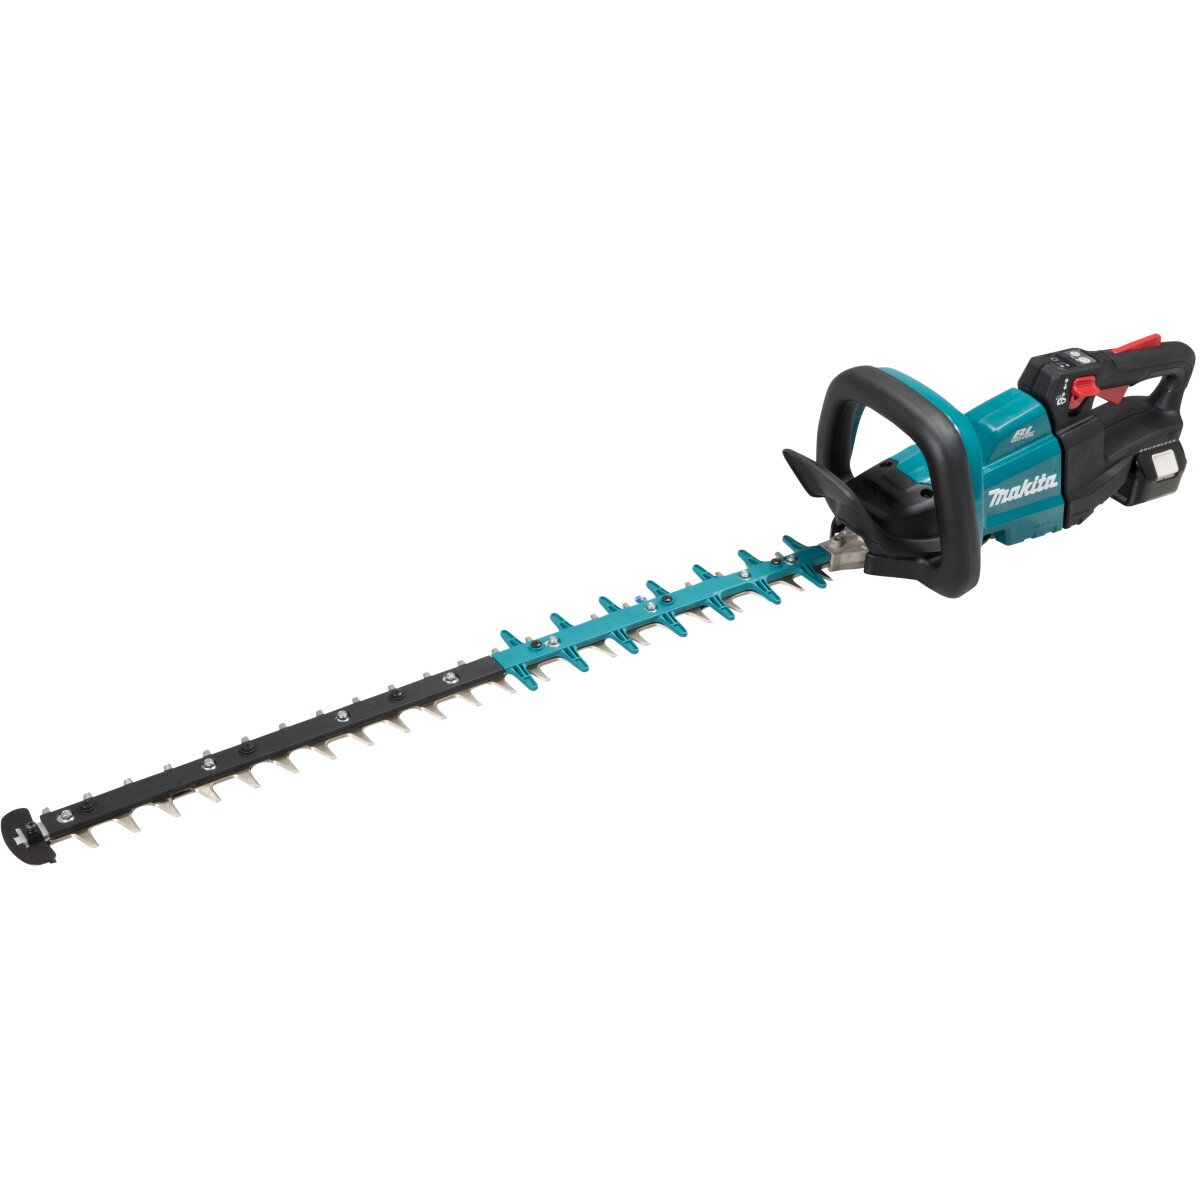 Makita DUH751RT 18V Brushless 75cm Hedge Trimmer with 1 x 5.0Ah Battery